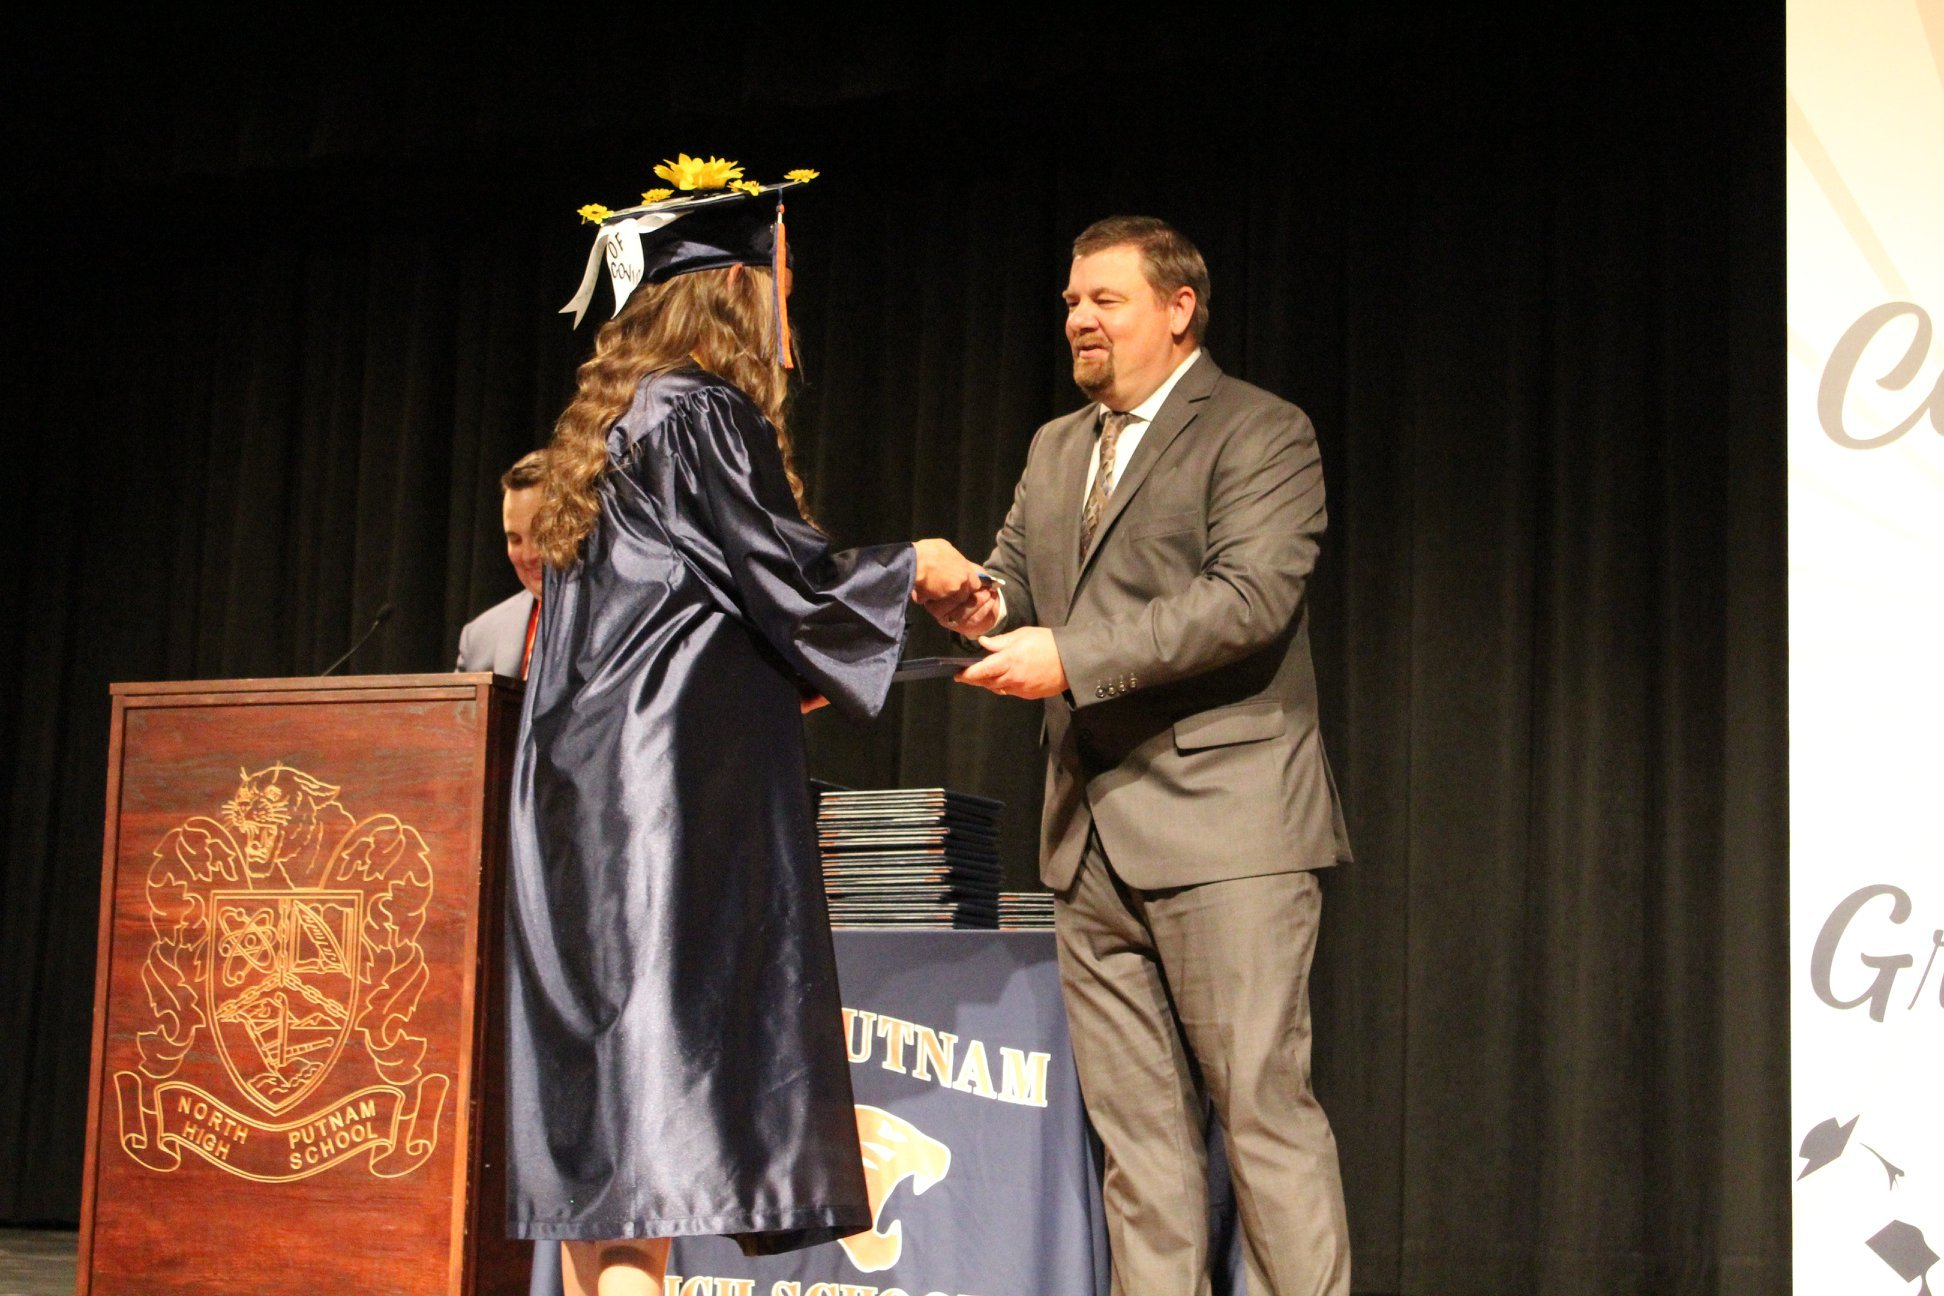 Student getting her diploma.